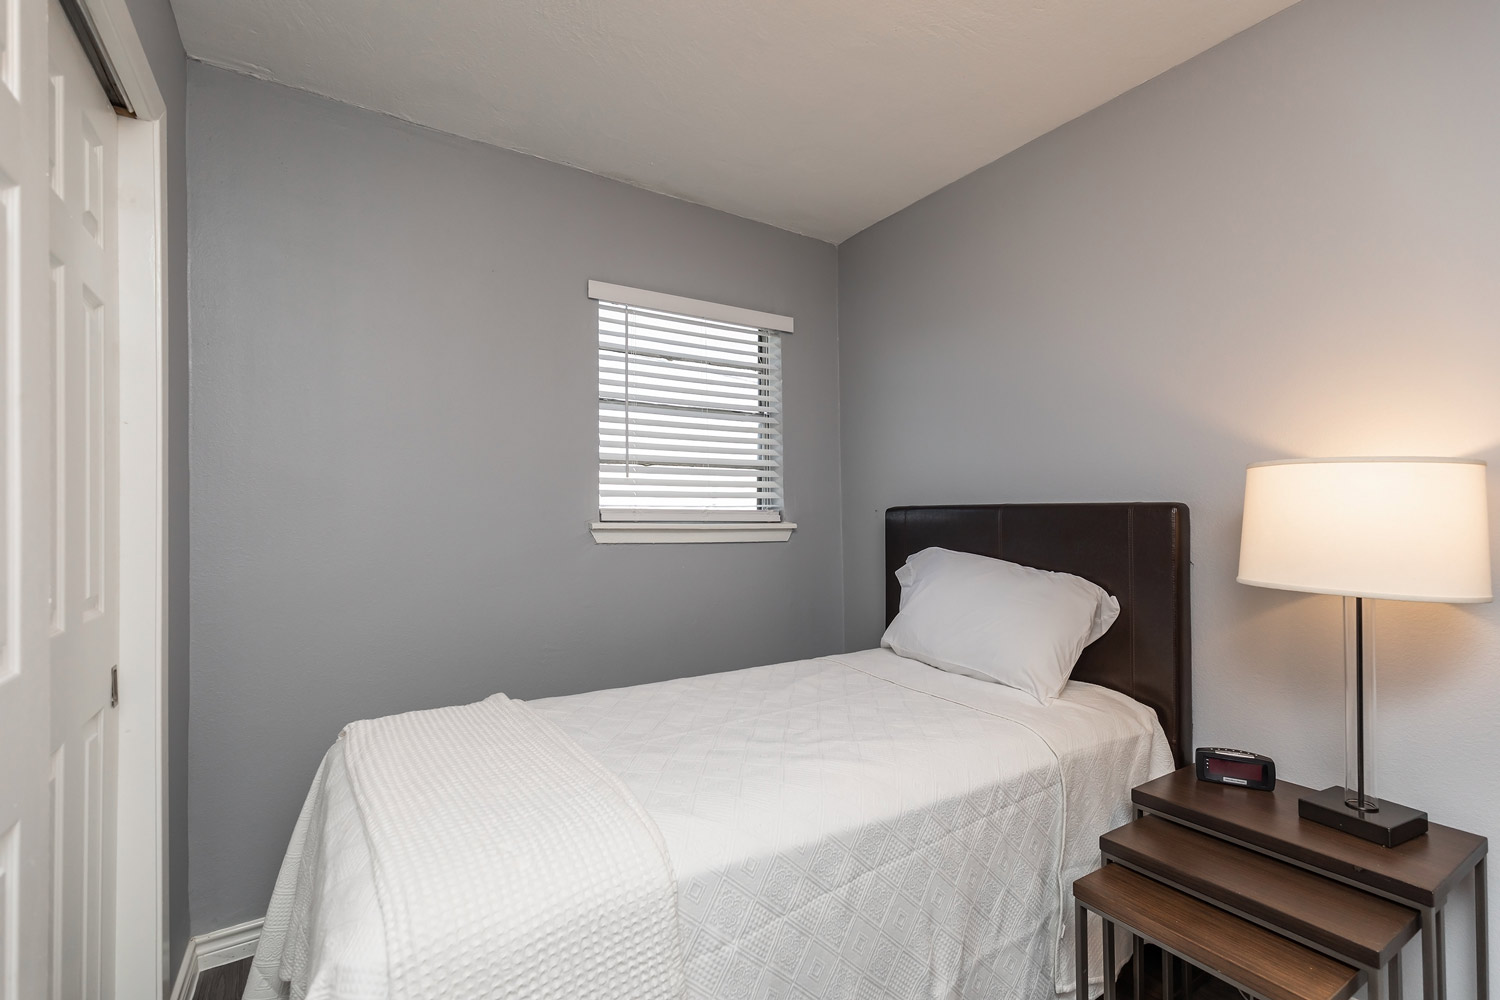 Interior View at The Five Points at Texas Apartments in Texas City, Texas